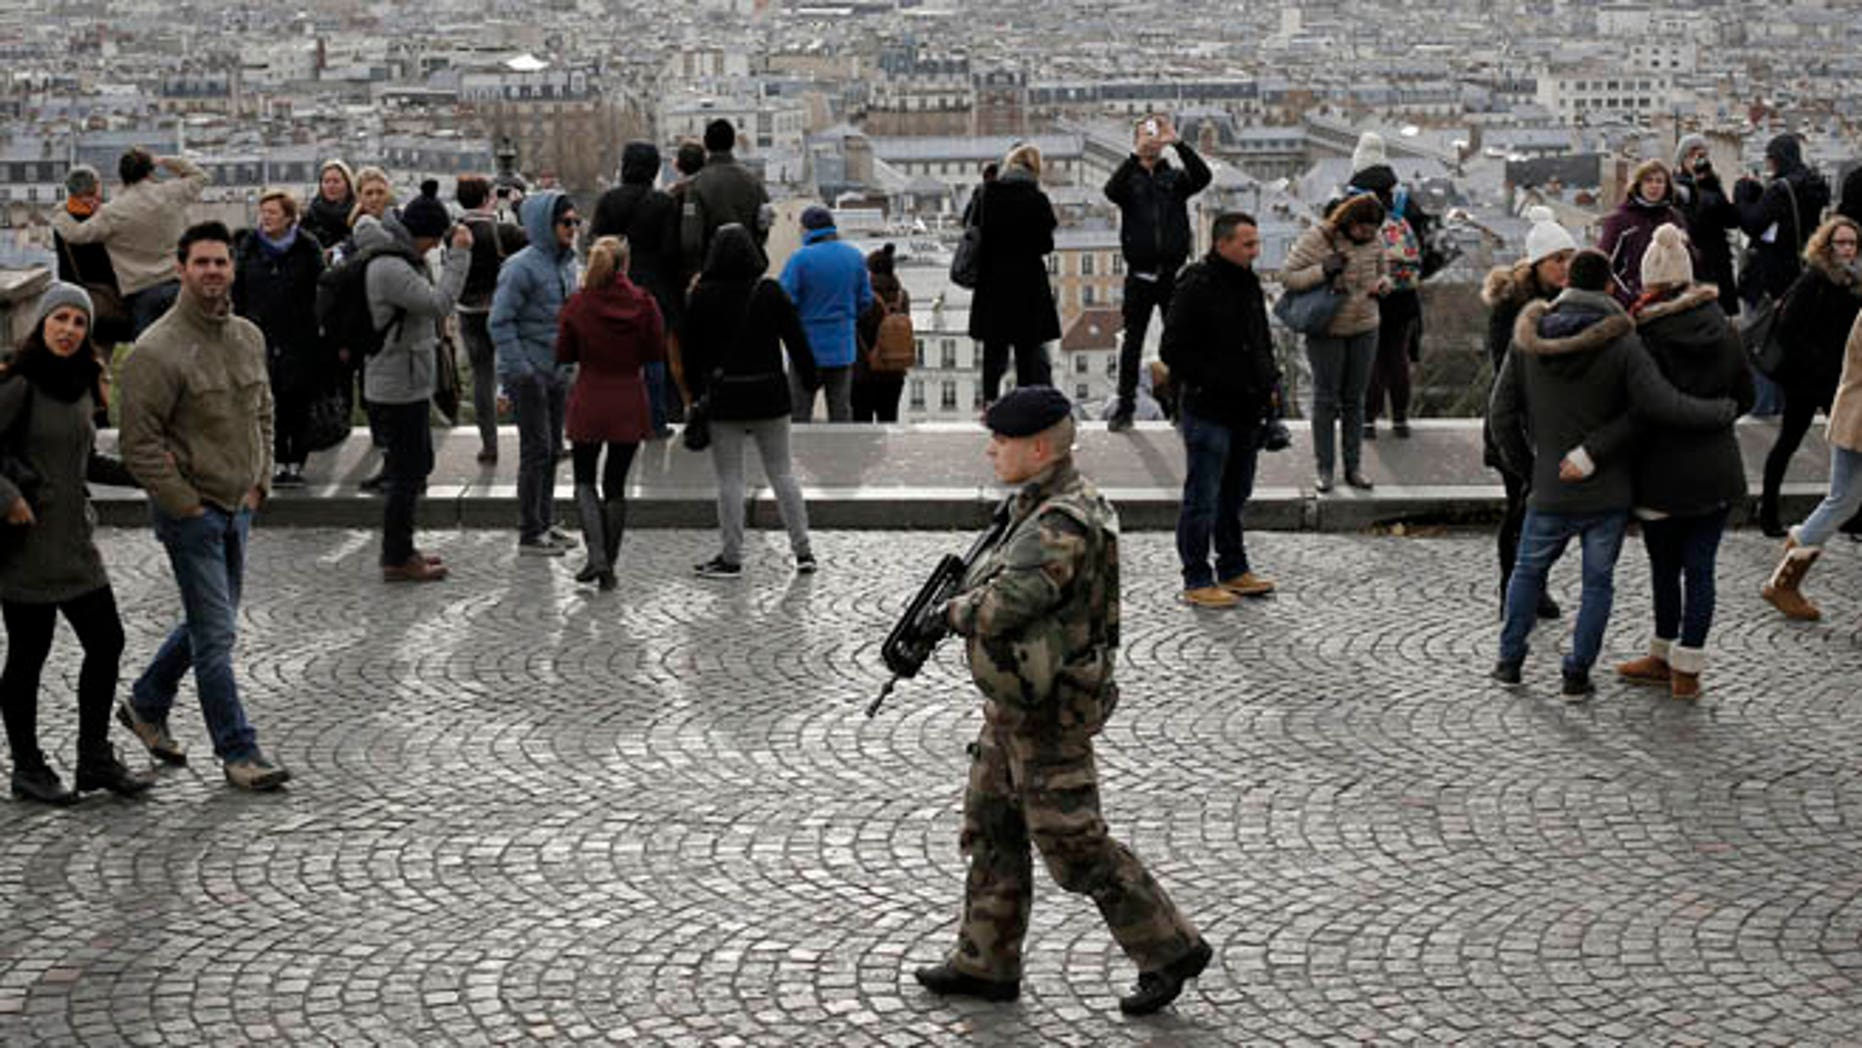 Nov. 21, 2015: A soldier patrols outside the Sacre Coeur basilica in Montmartre  Paris. Security has been on high alert in the  French capital, after the attacks in Paris on Nov. 13, which killed 130 people.